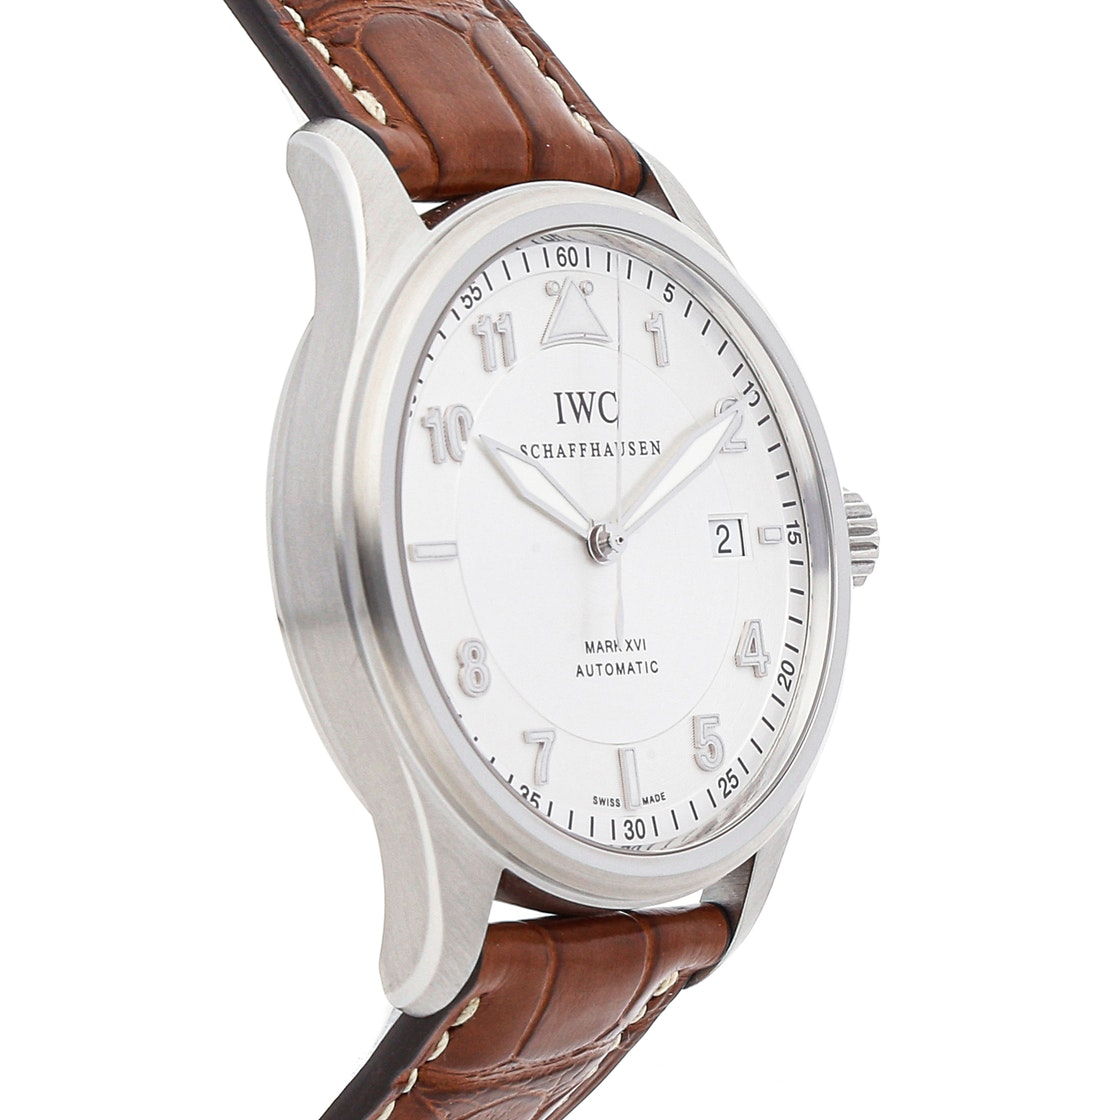 IWC Pilot's Watch Spitfire Mark XV1 IW3255-02